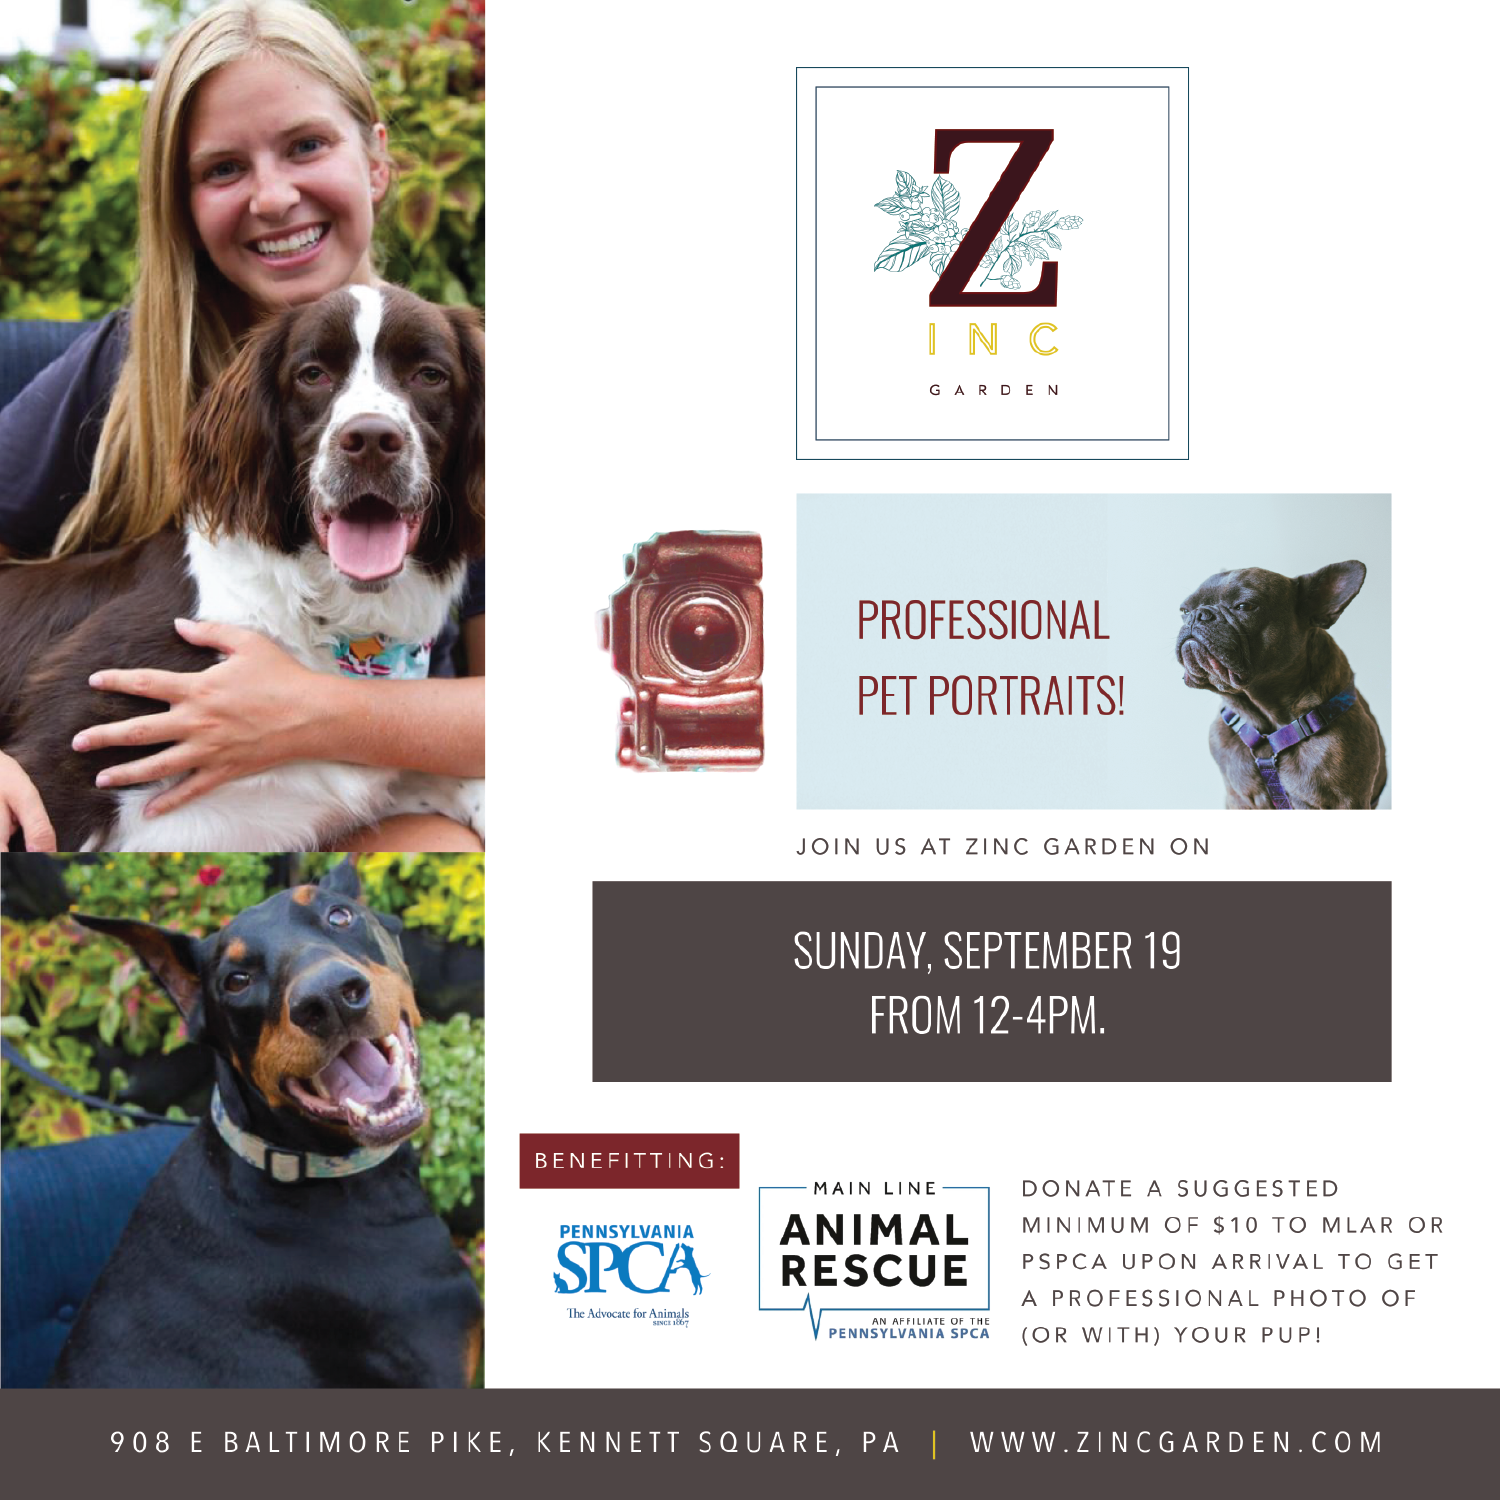 Main Line Animal Rescue and Zinc Garden charity photo event Sunday September 19th 2021